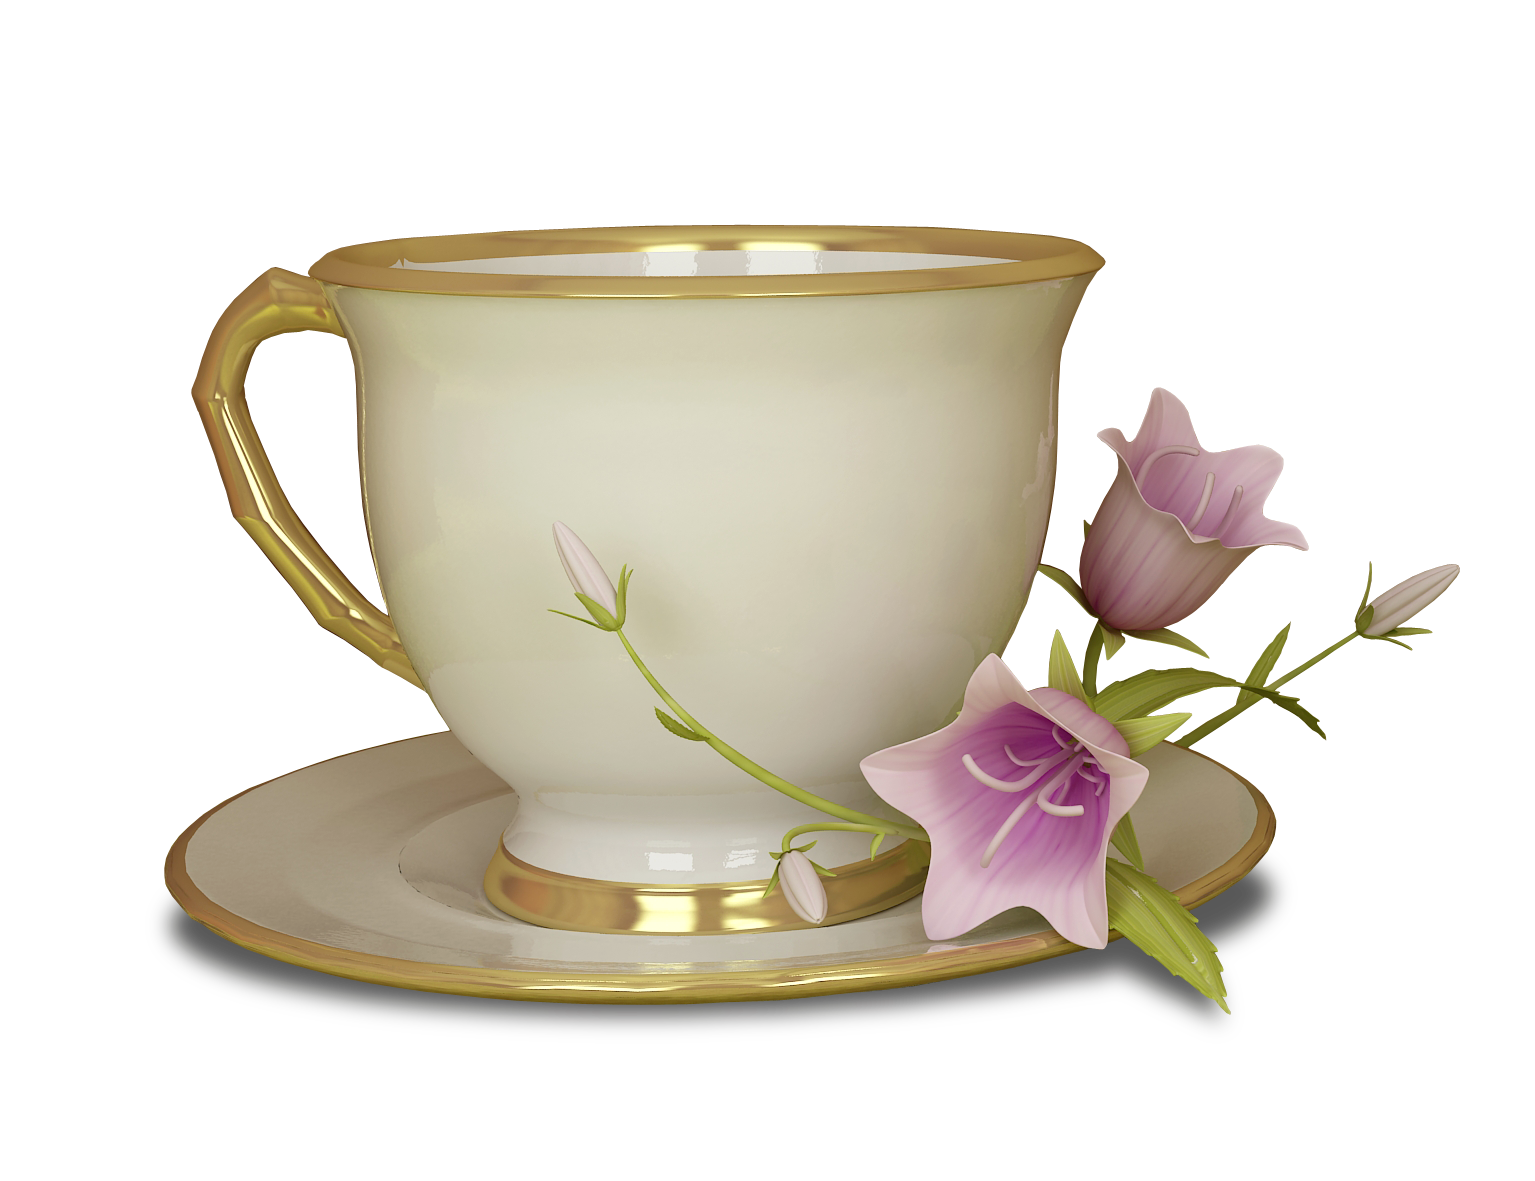 Teapot clipart fifteen Flower Transparent Pink View size